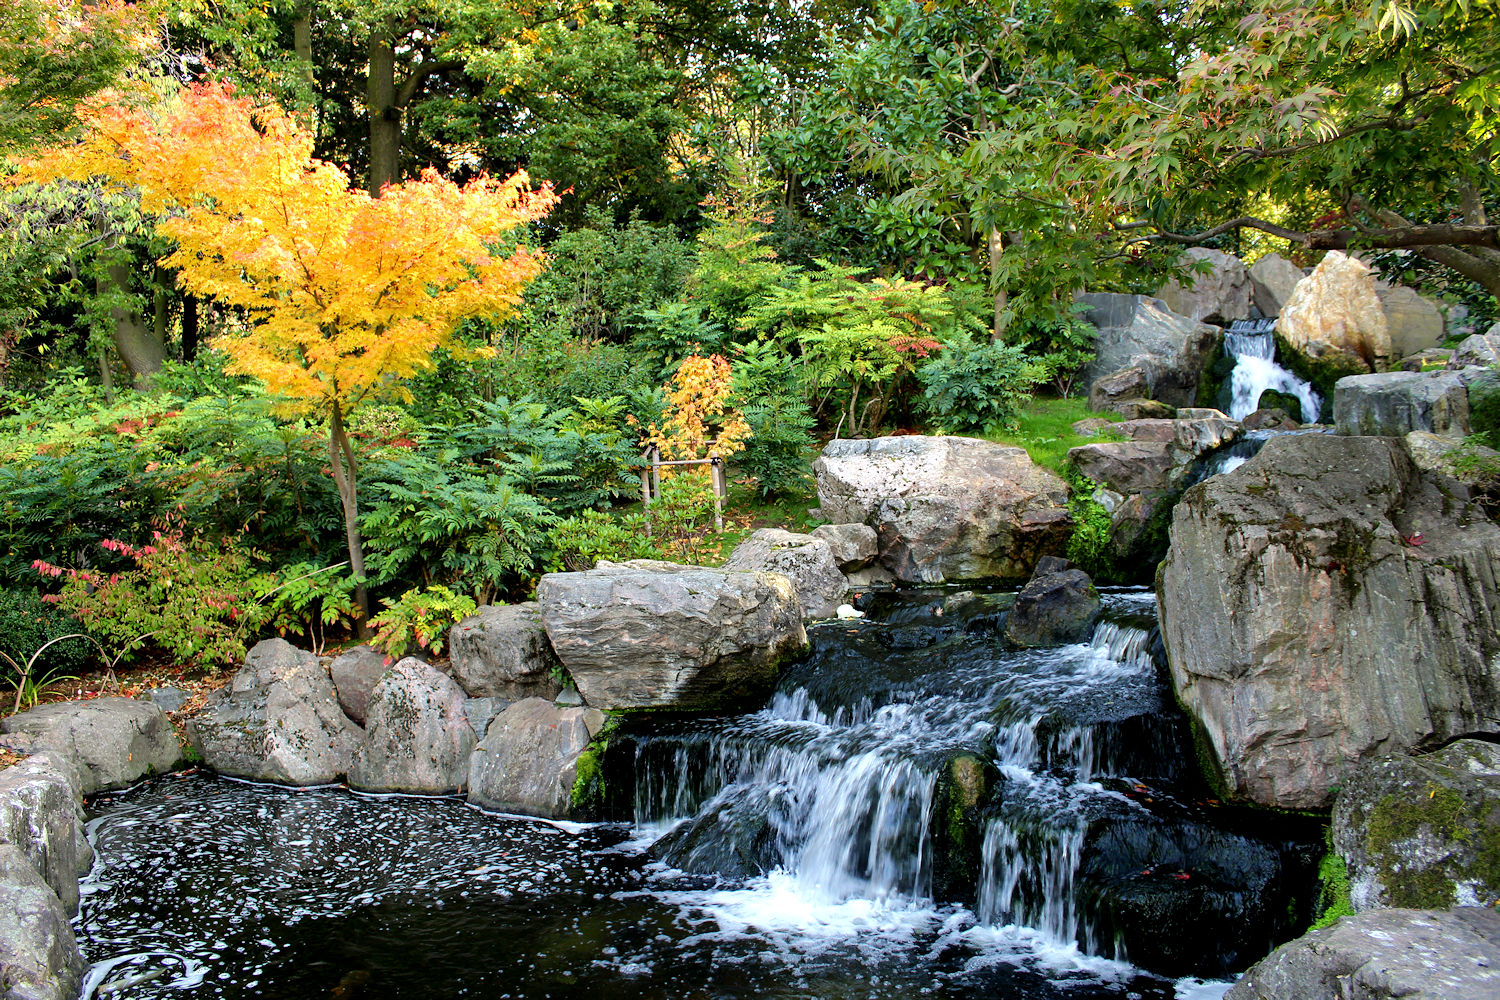 Holland Park - Kyoto Garden - The local's guide to London